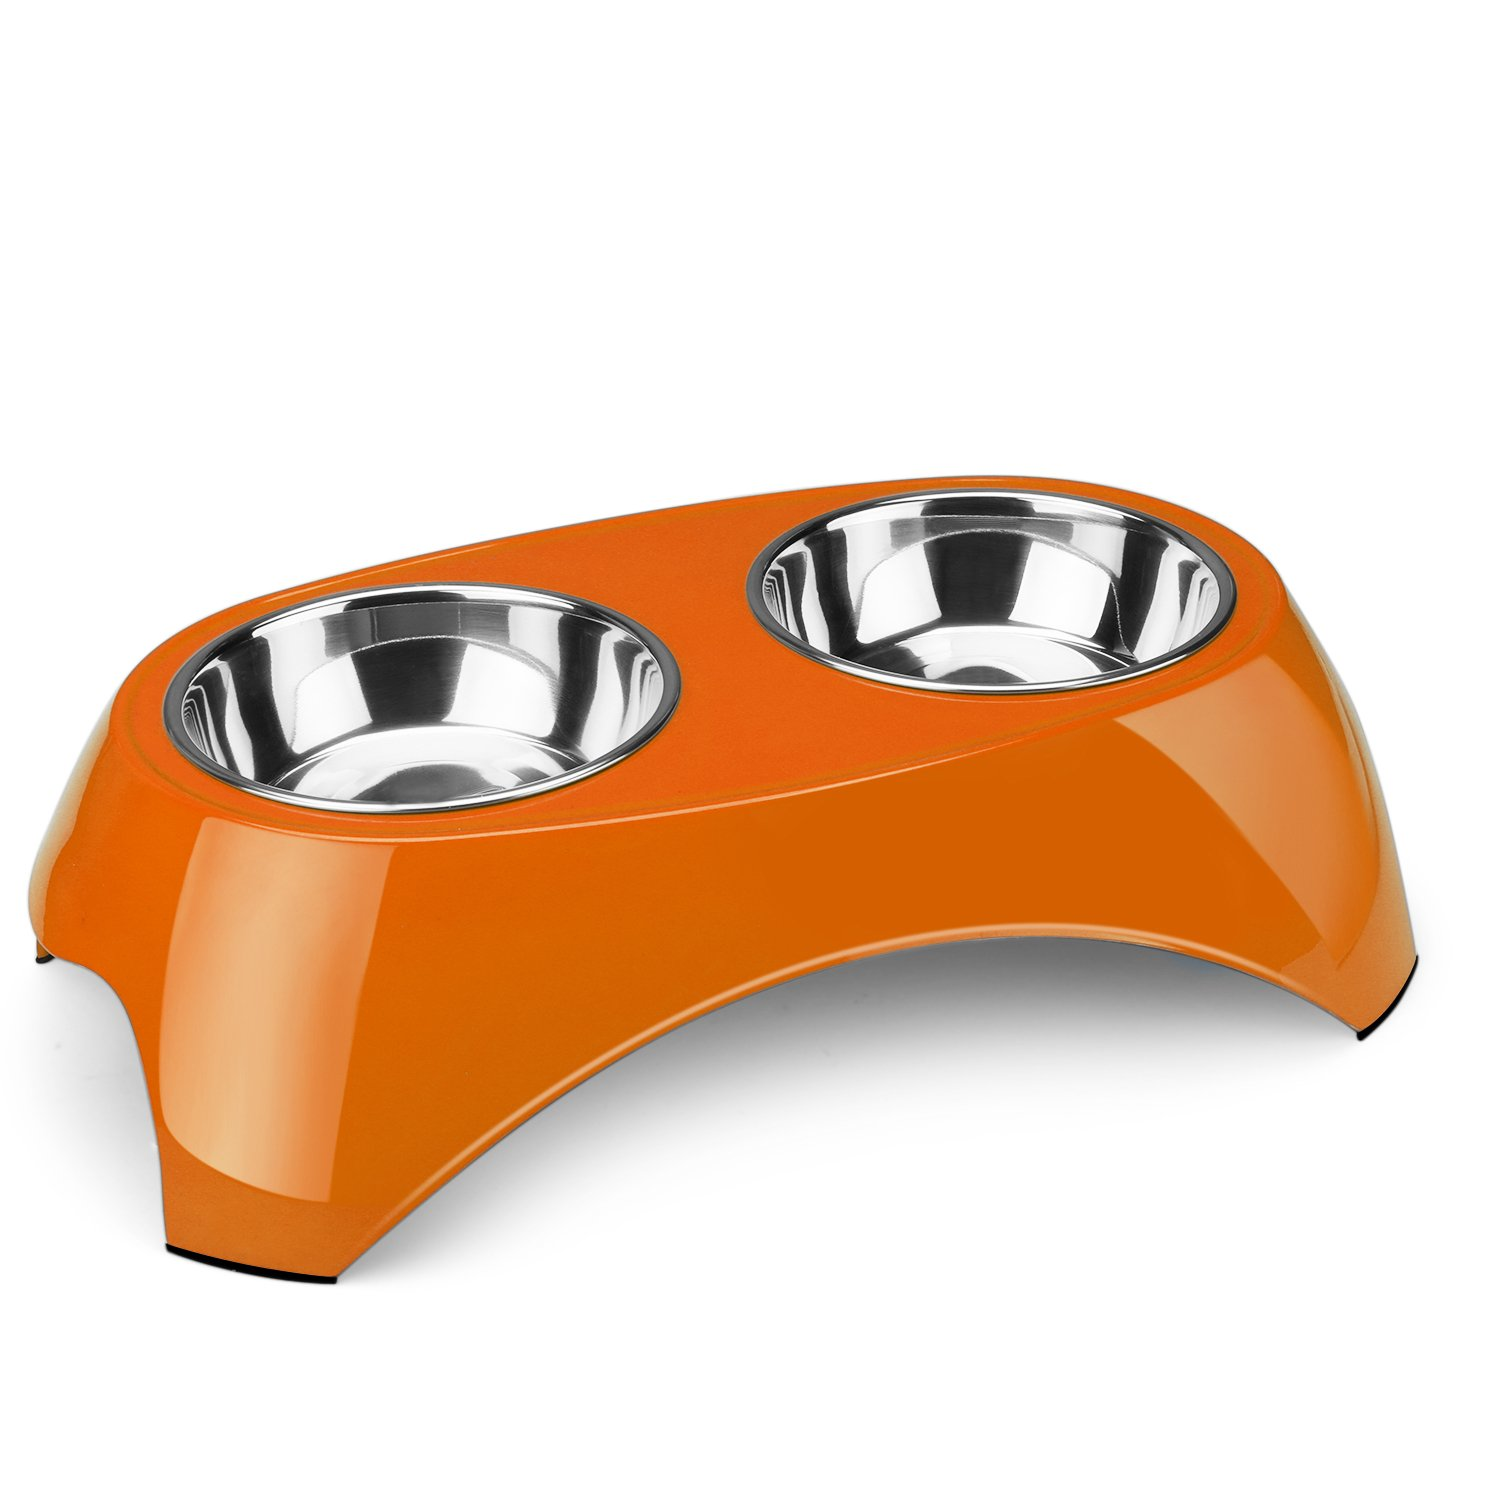 Flexzion Pet Feeder Bowls Double Stainless Steel (Set of 2) - Removable Raised Feeding Station Tray Dog Cat Puppies Animal Food Water Holder Container Dish Table Dinner Set with Elevated Stand Orange